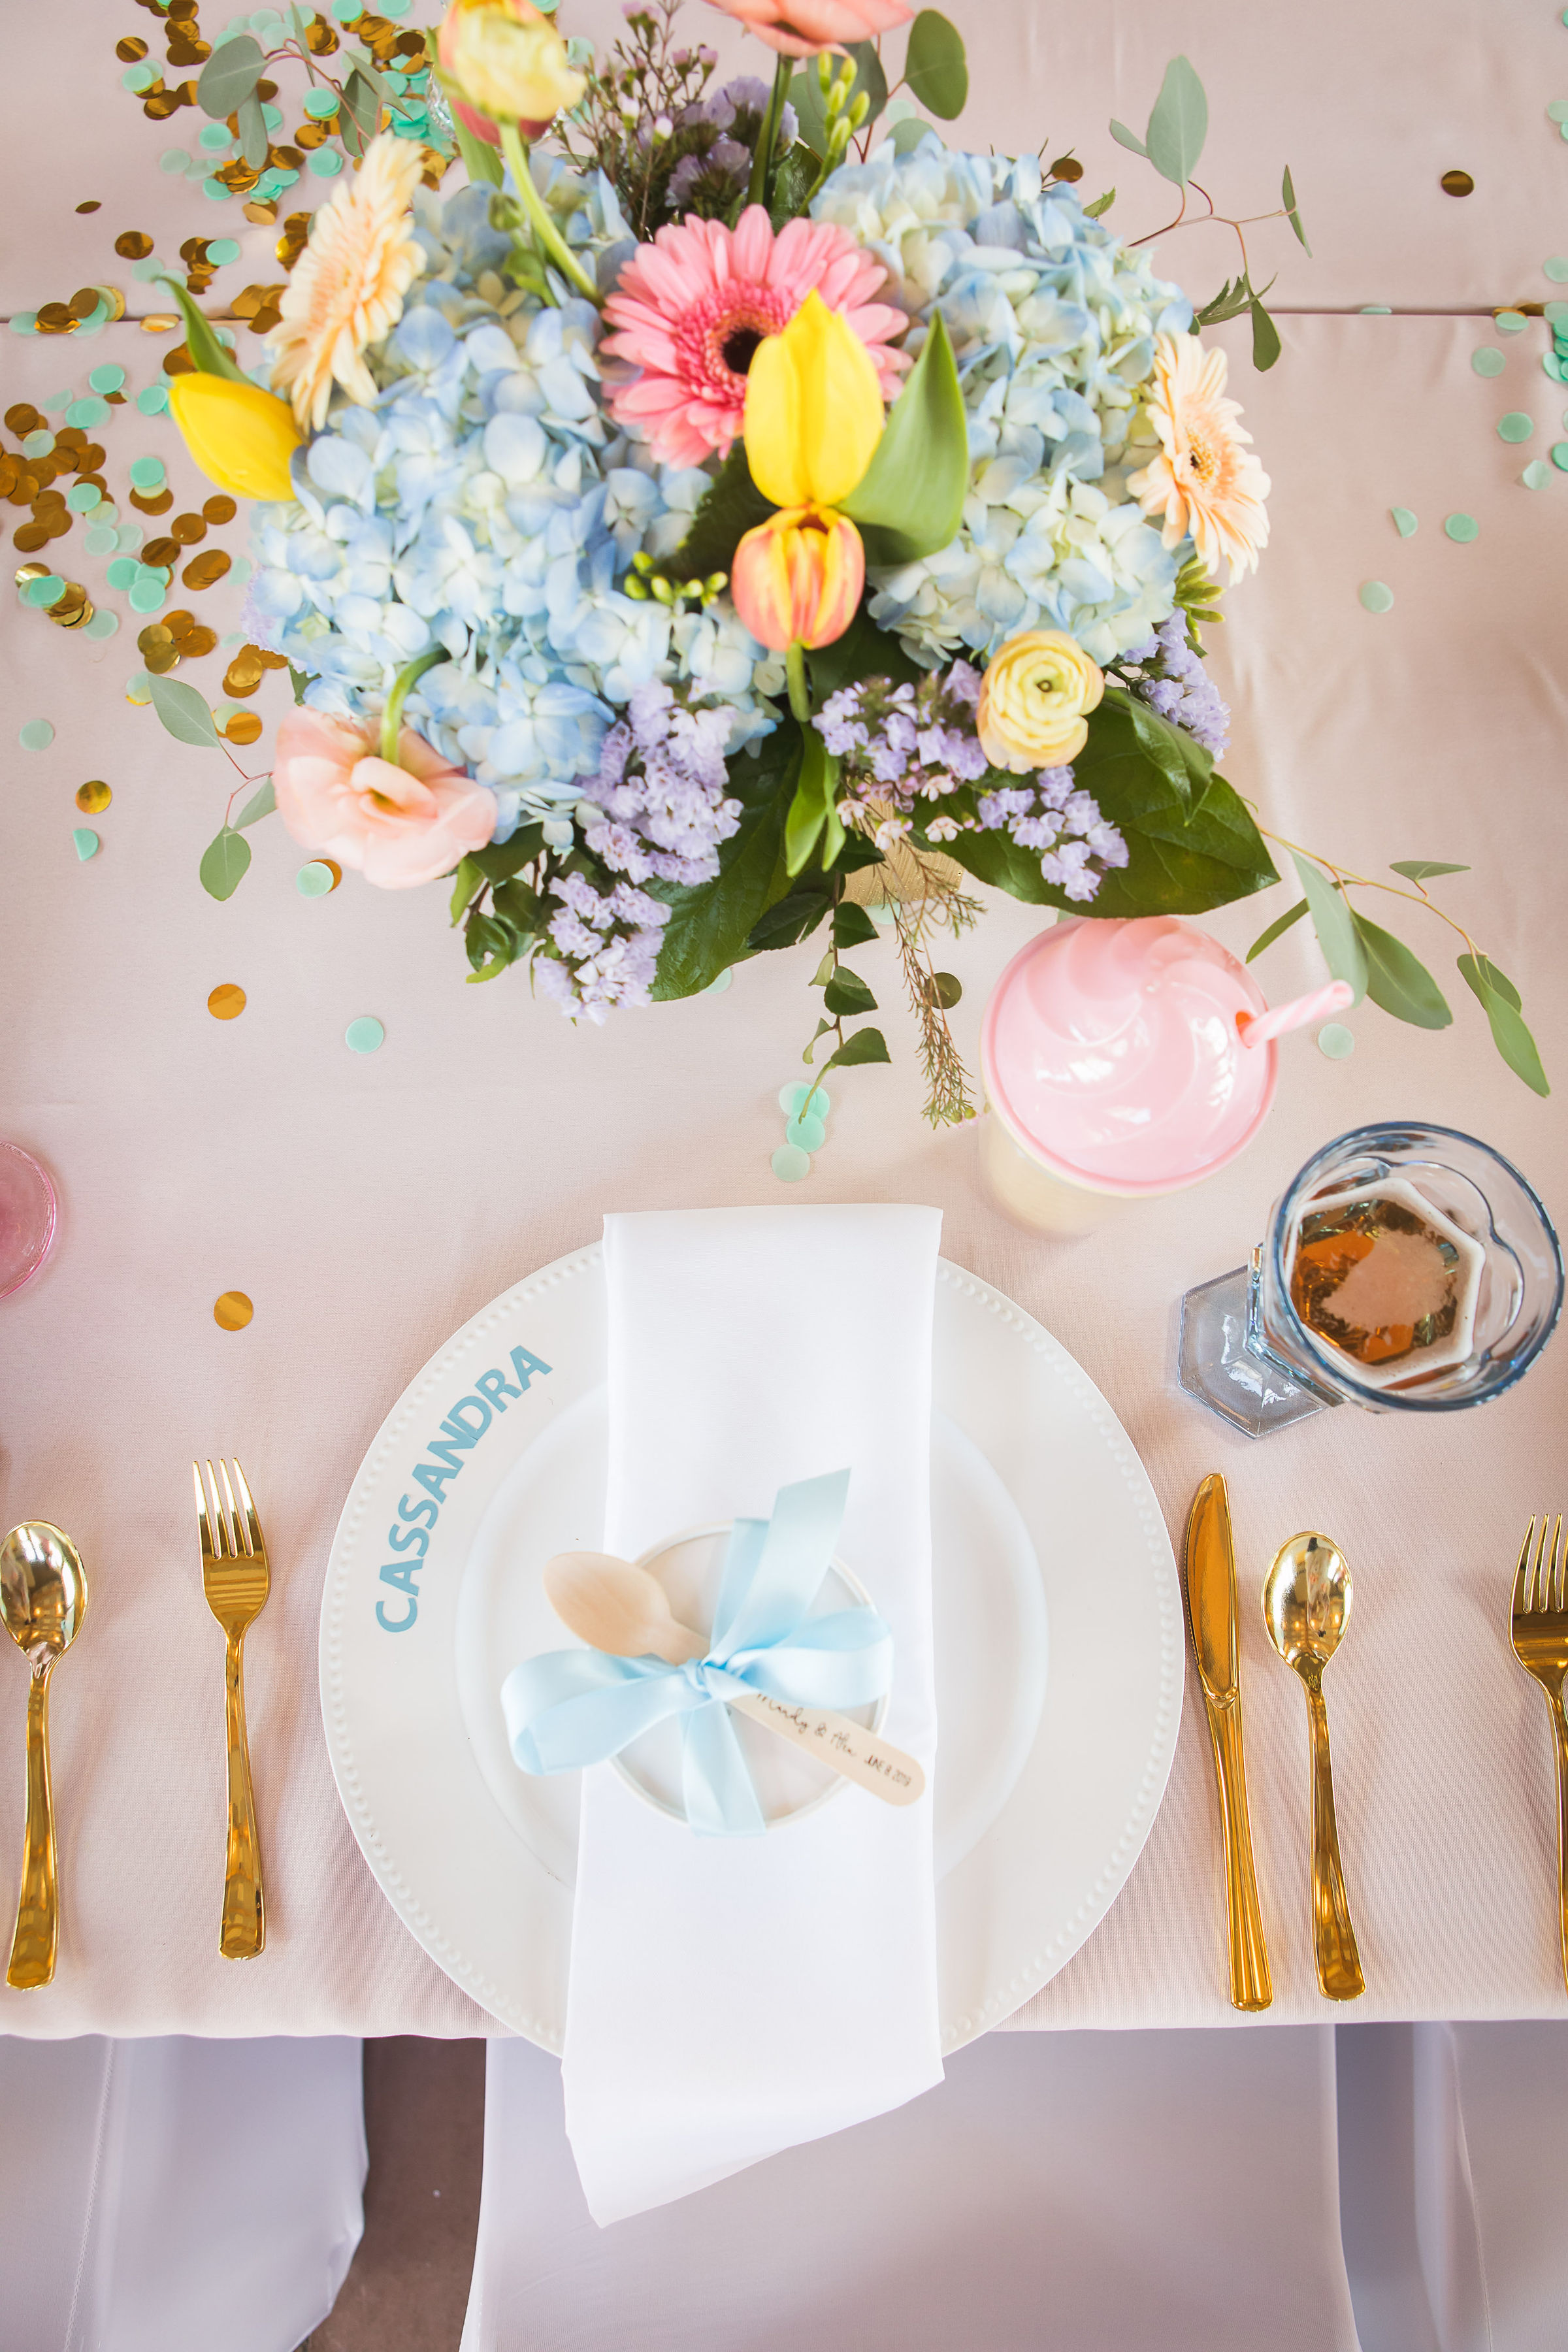 She's-Been-Scooped-Up-Bridal-Shower-Event-Prep-Cassandra-Clair-Love-is-Greater-Photography-15.jpg